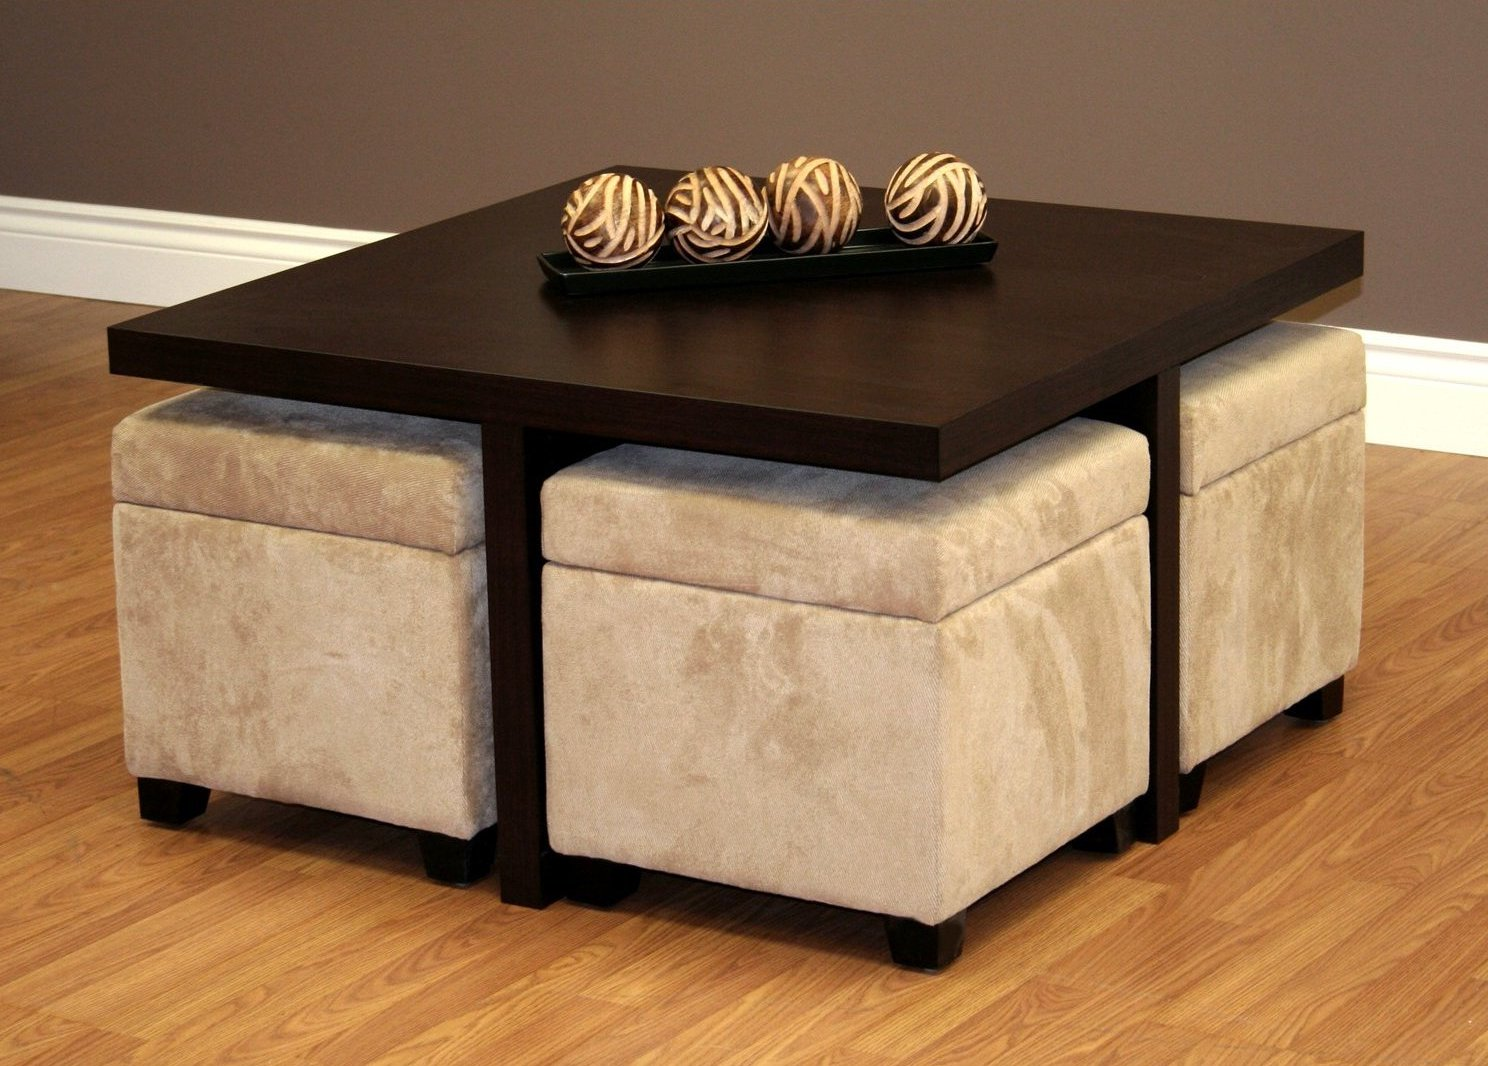 Square Dark Wood Coffee Table with Underneath